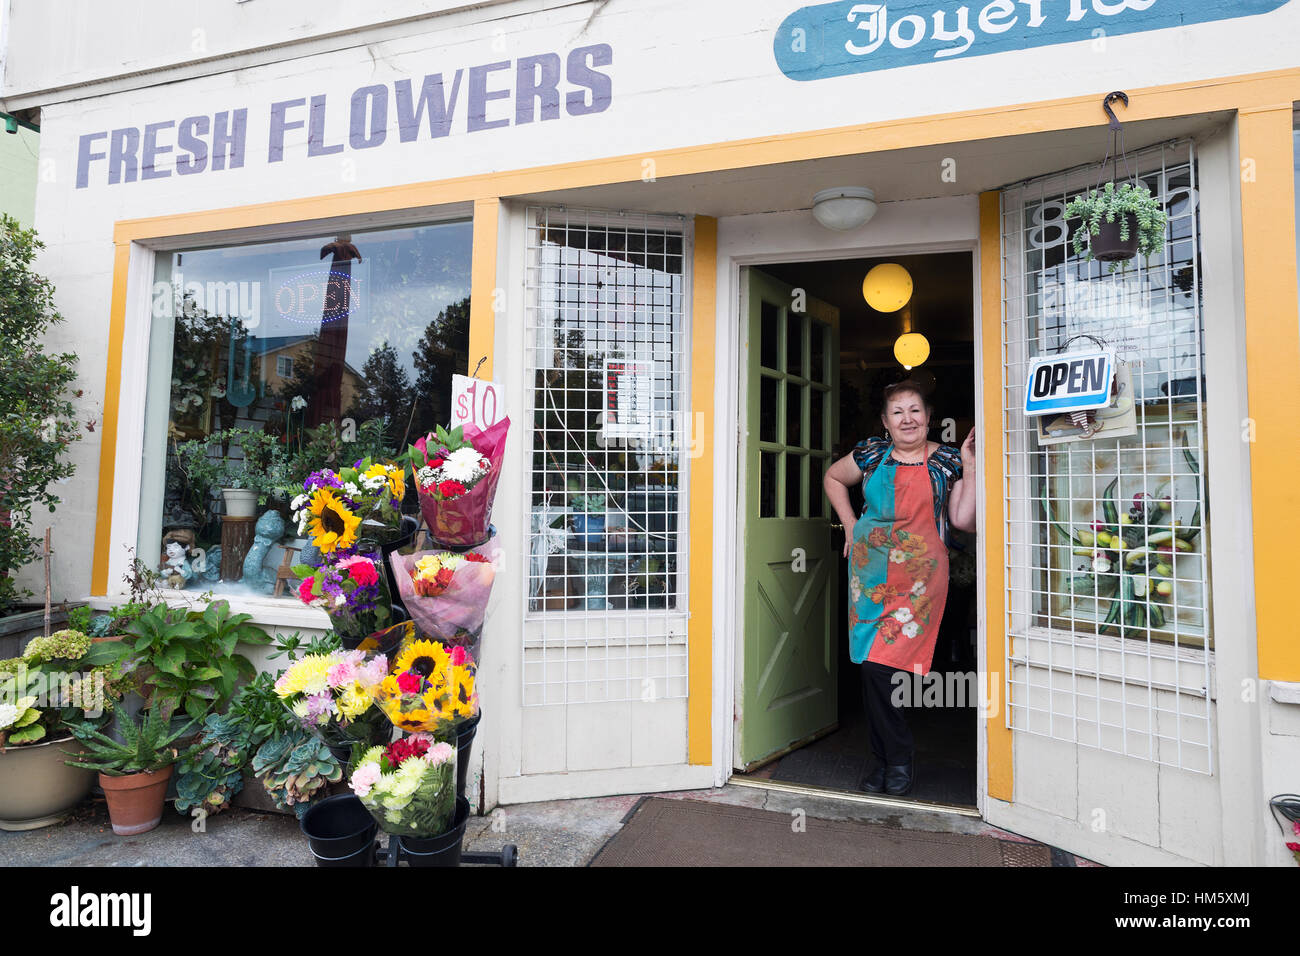 Portrait of female florist standing in doorway of flower shop - Stock Image